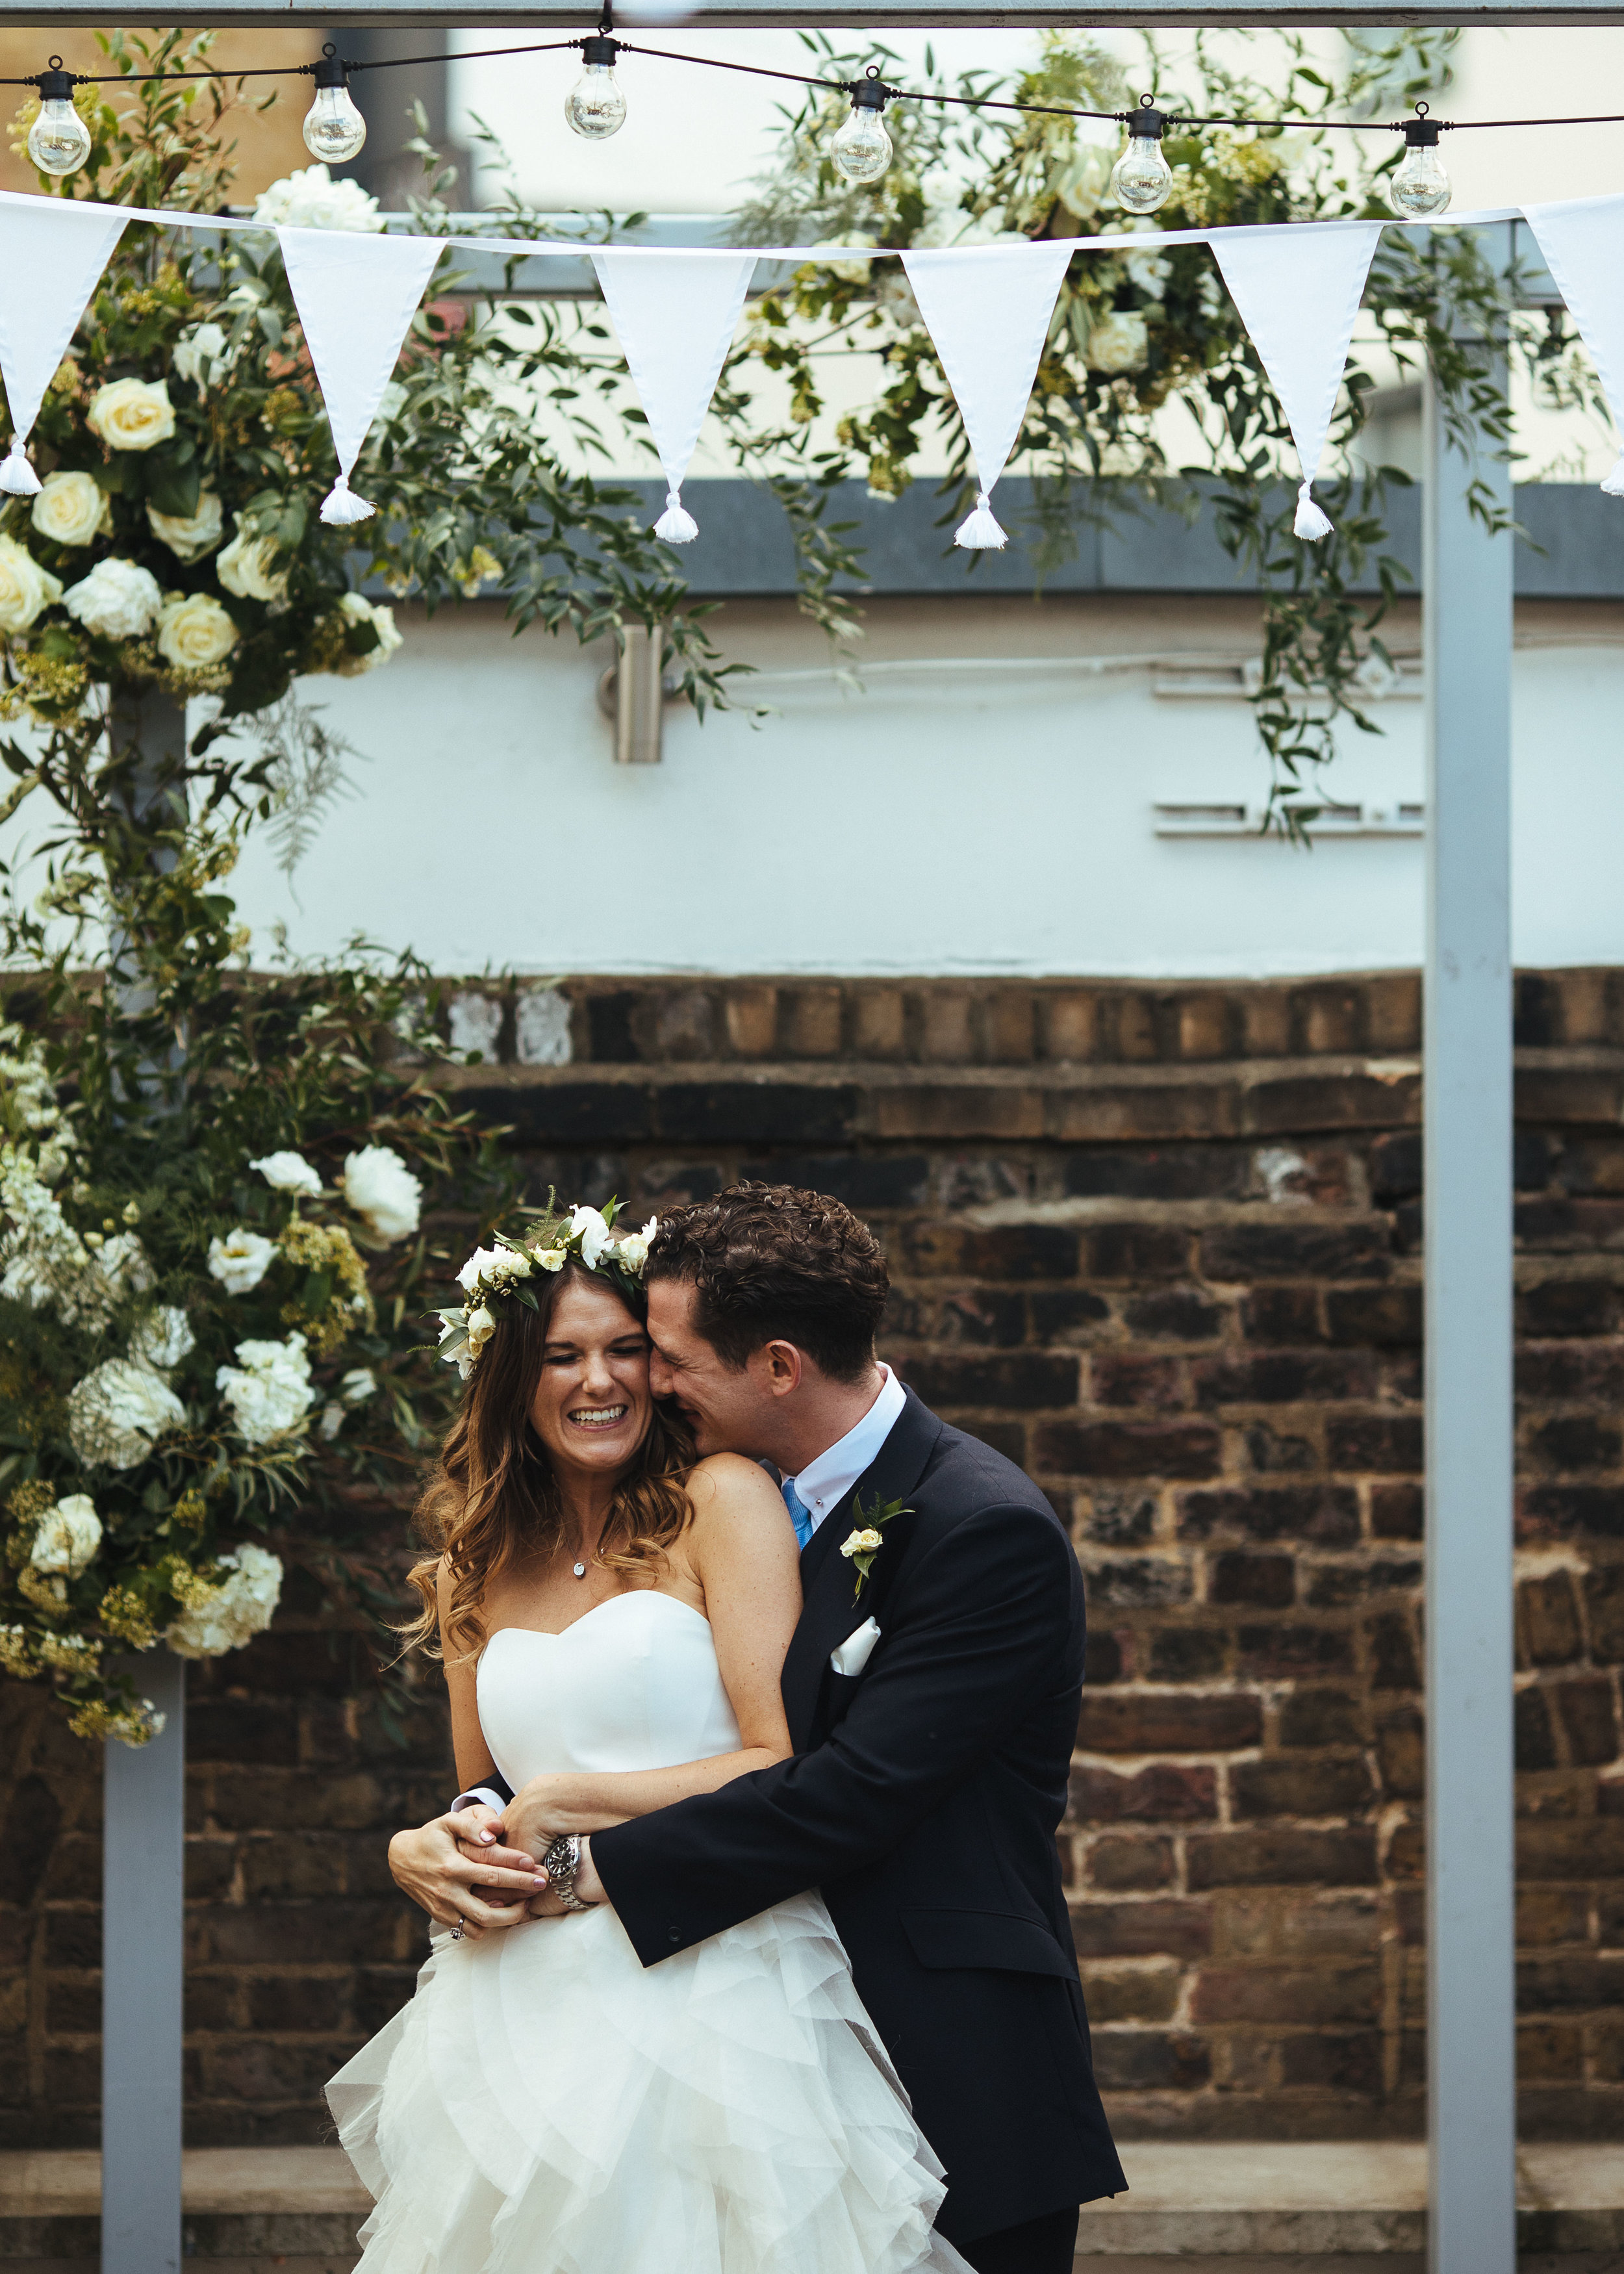 Beautiful Juliet wore a wedding dress by Halfpenny London